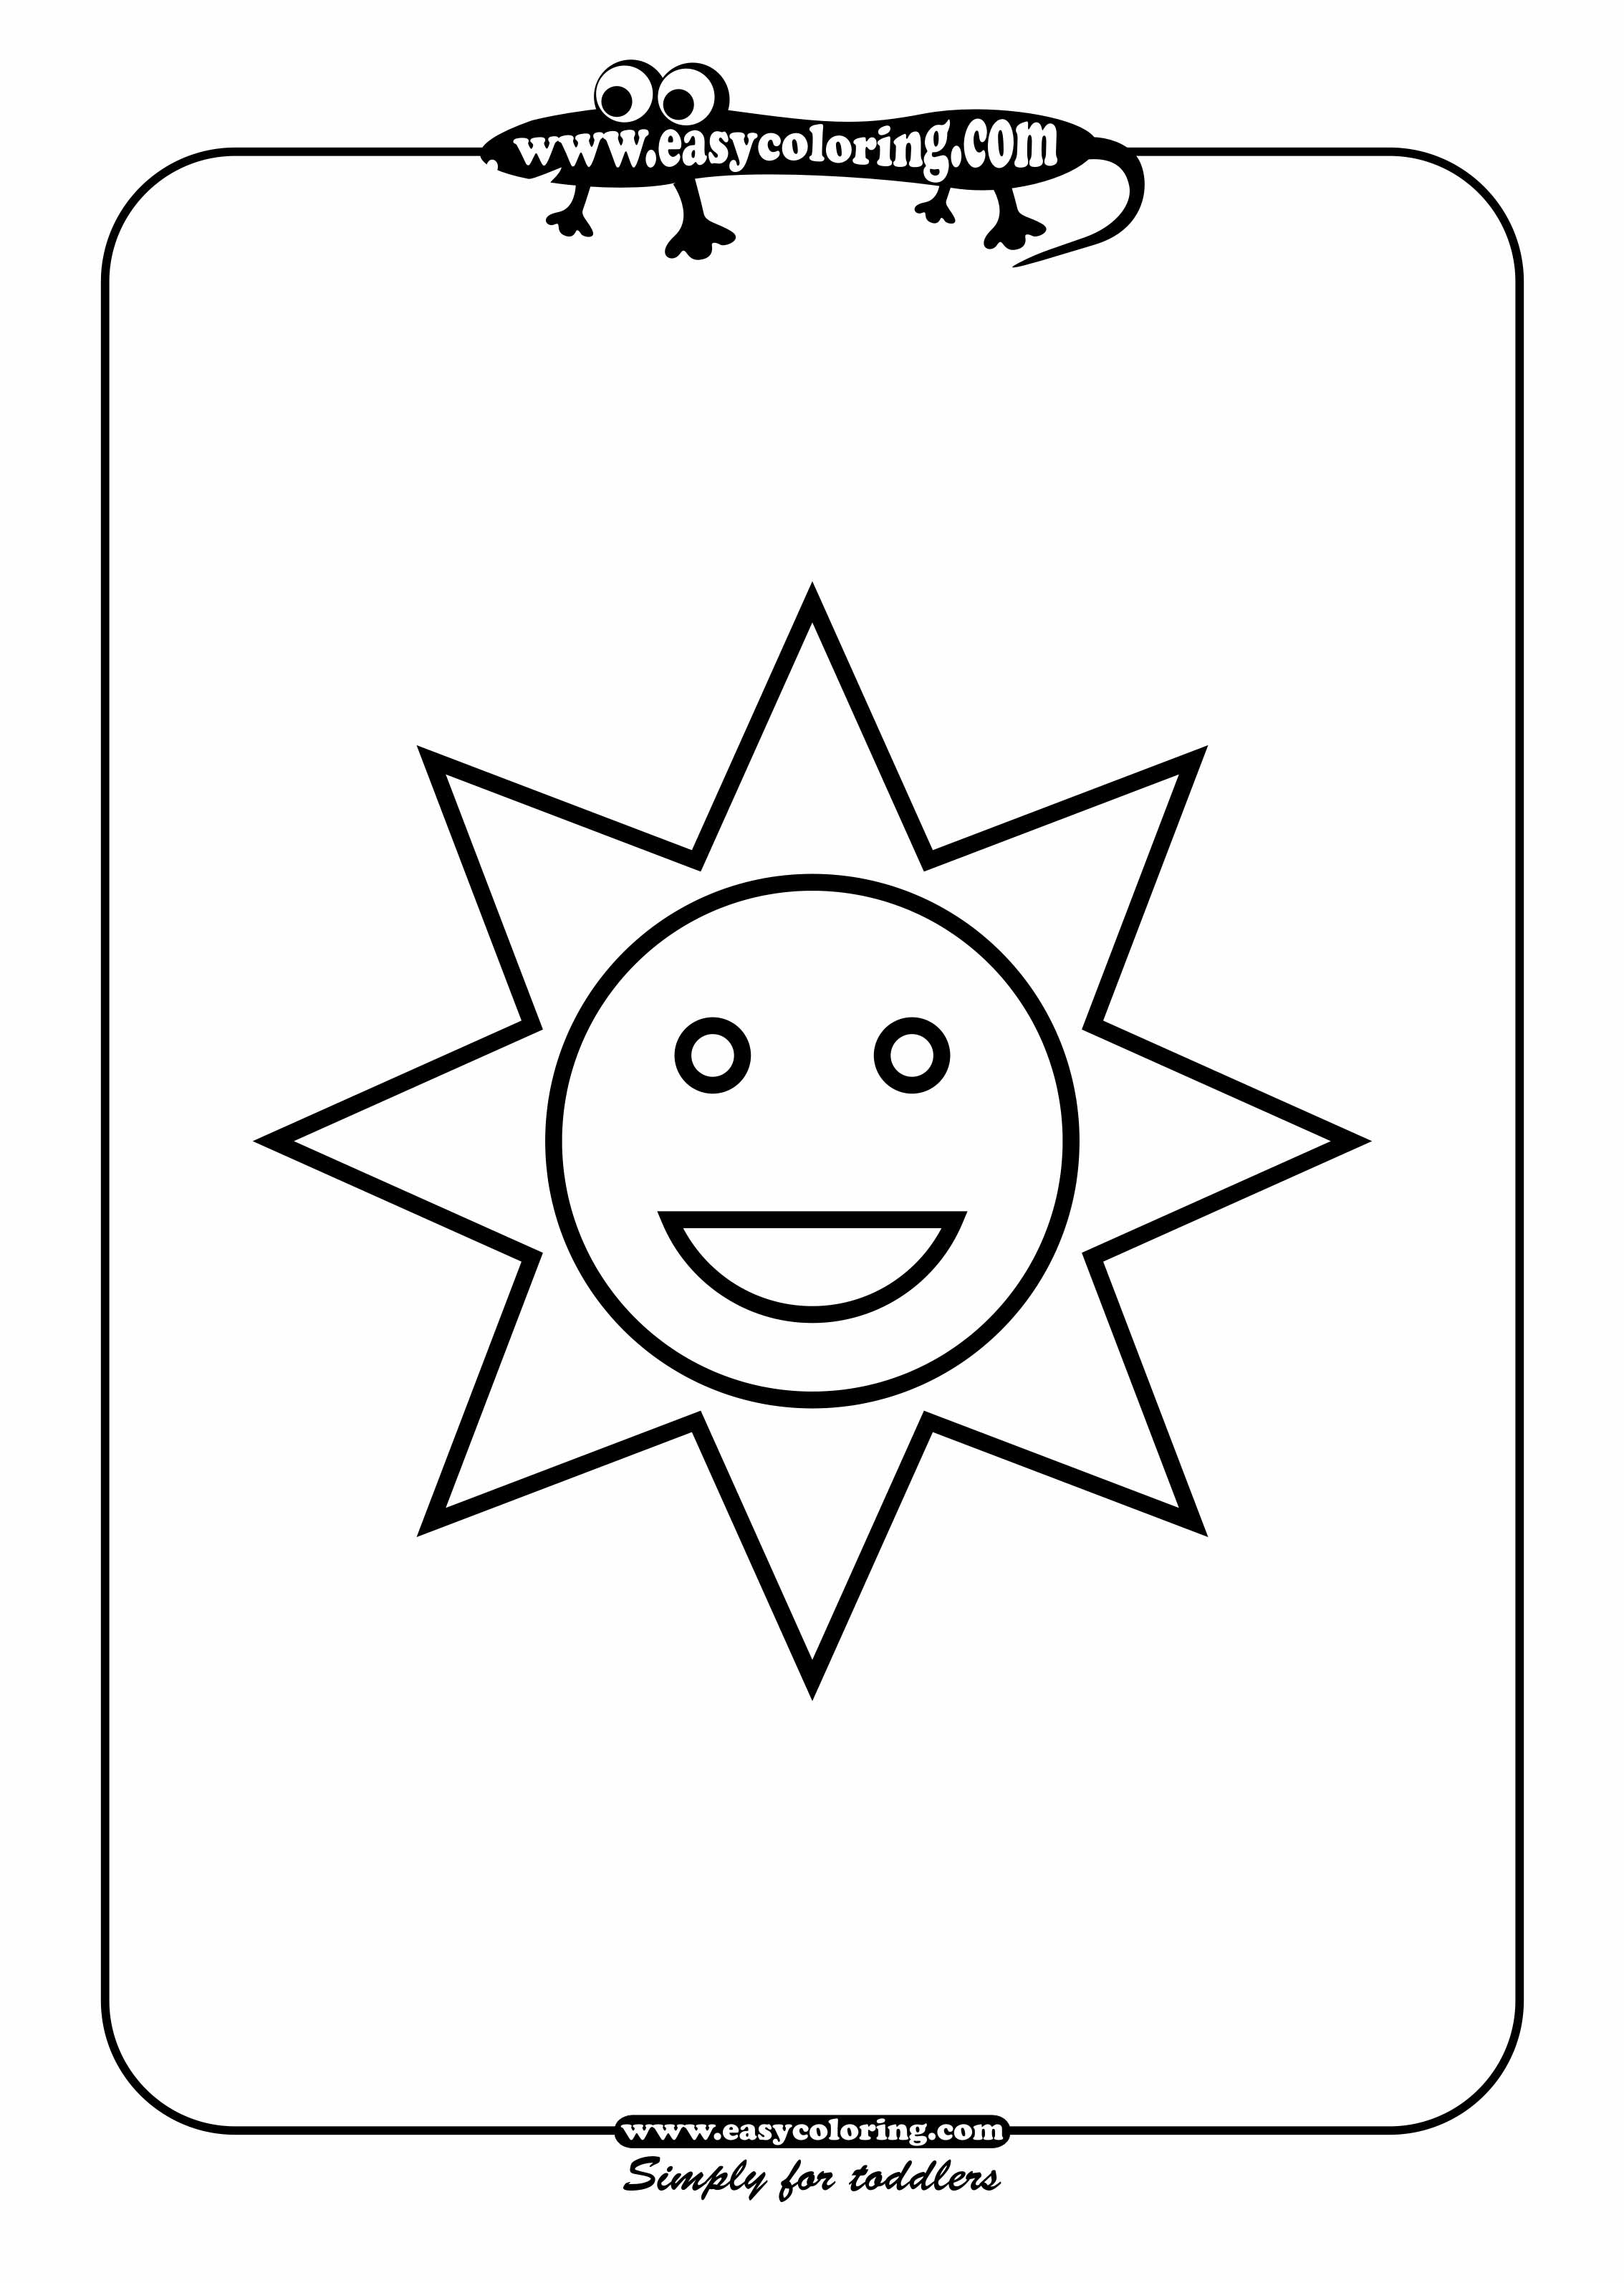 2267x3186 Simple Drawing For Kids Using Shapes Sun